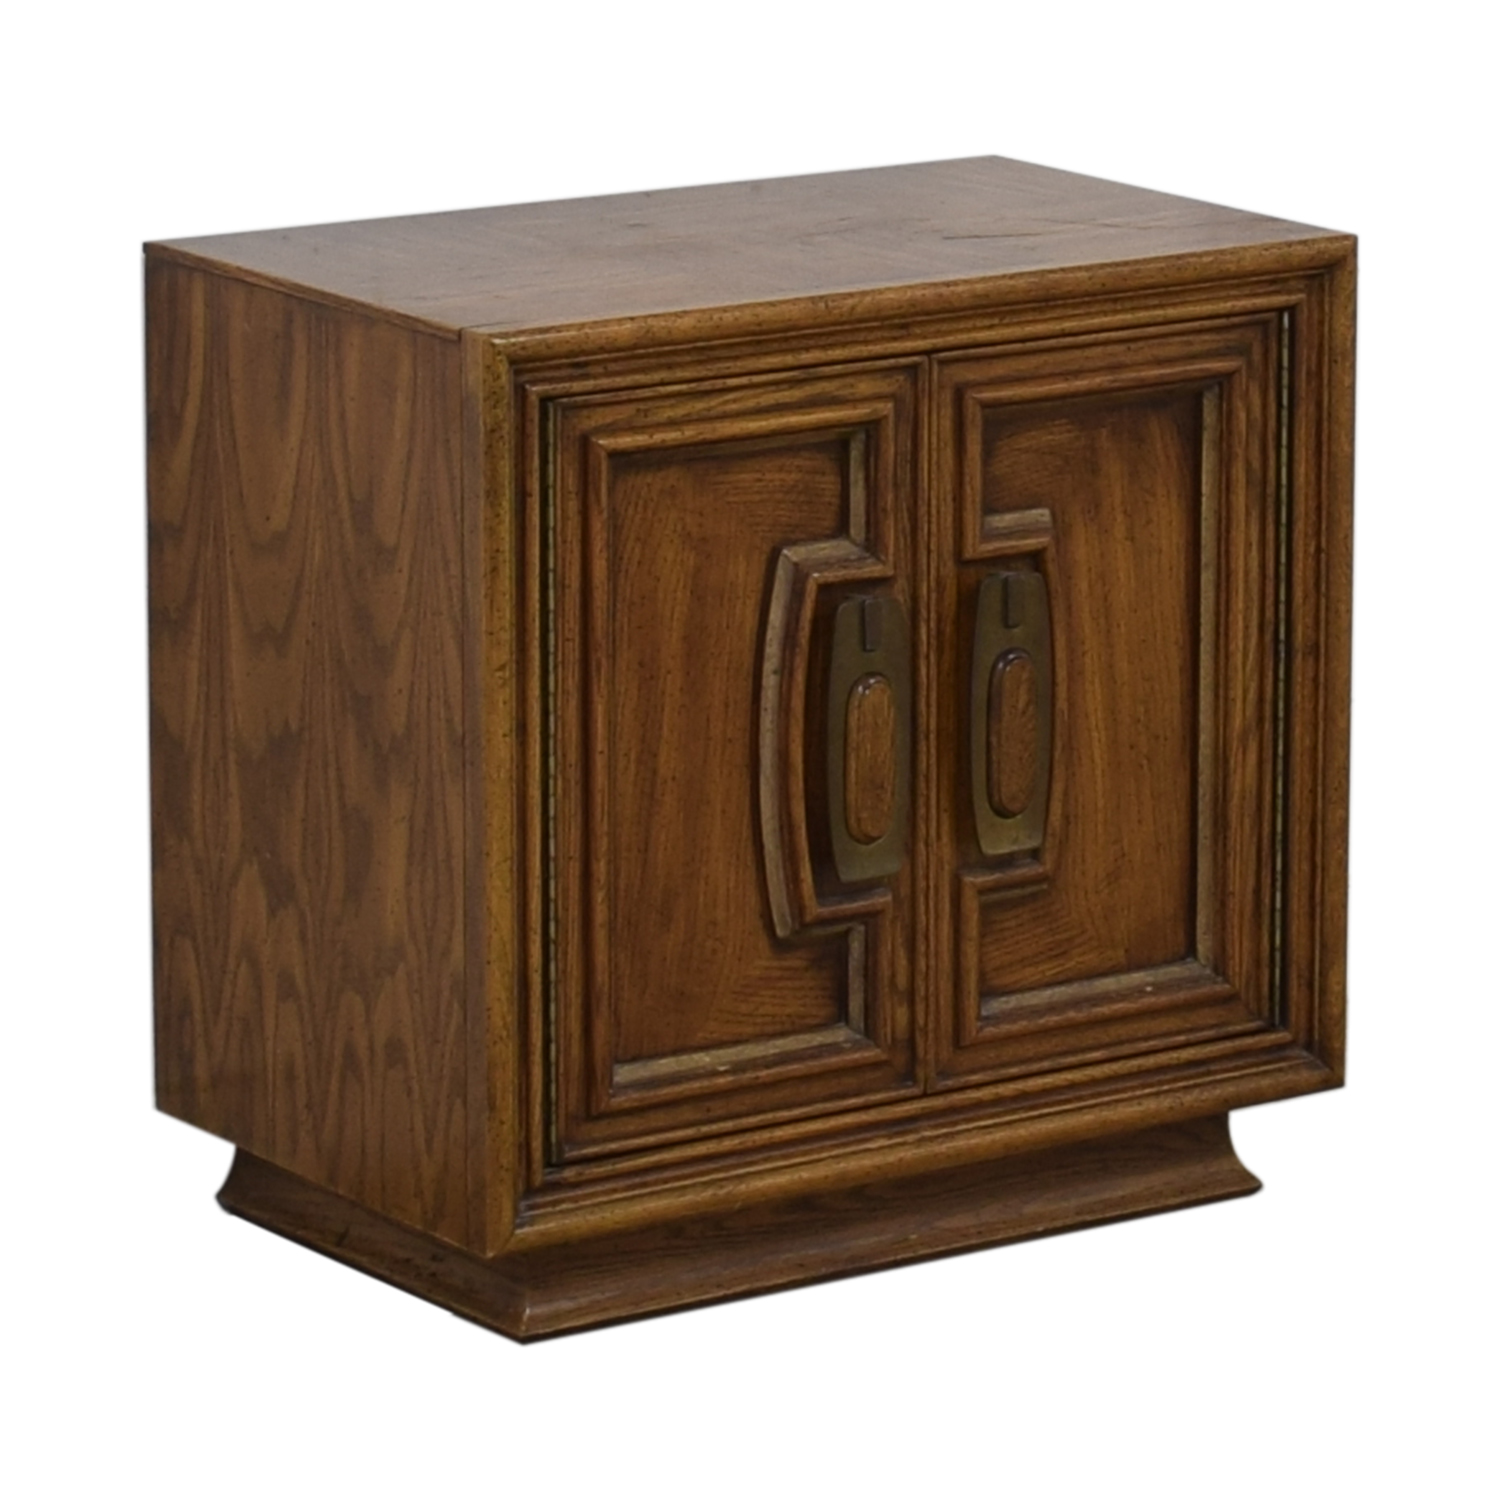 Single Drawer Wood Night Table on sale